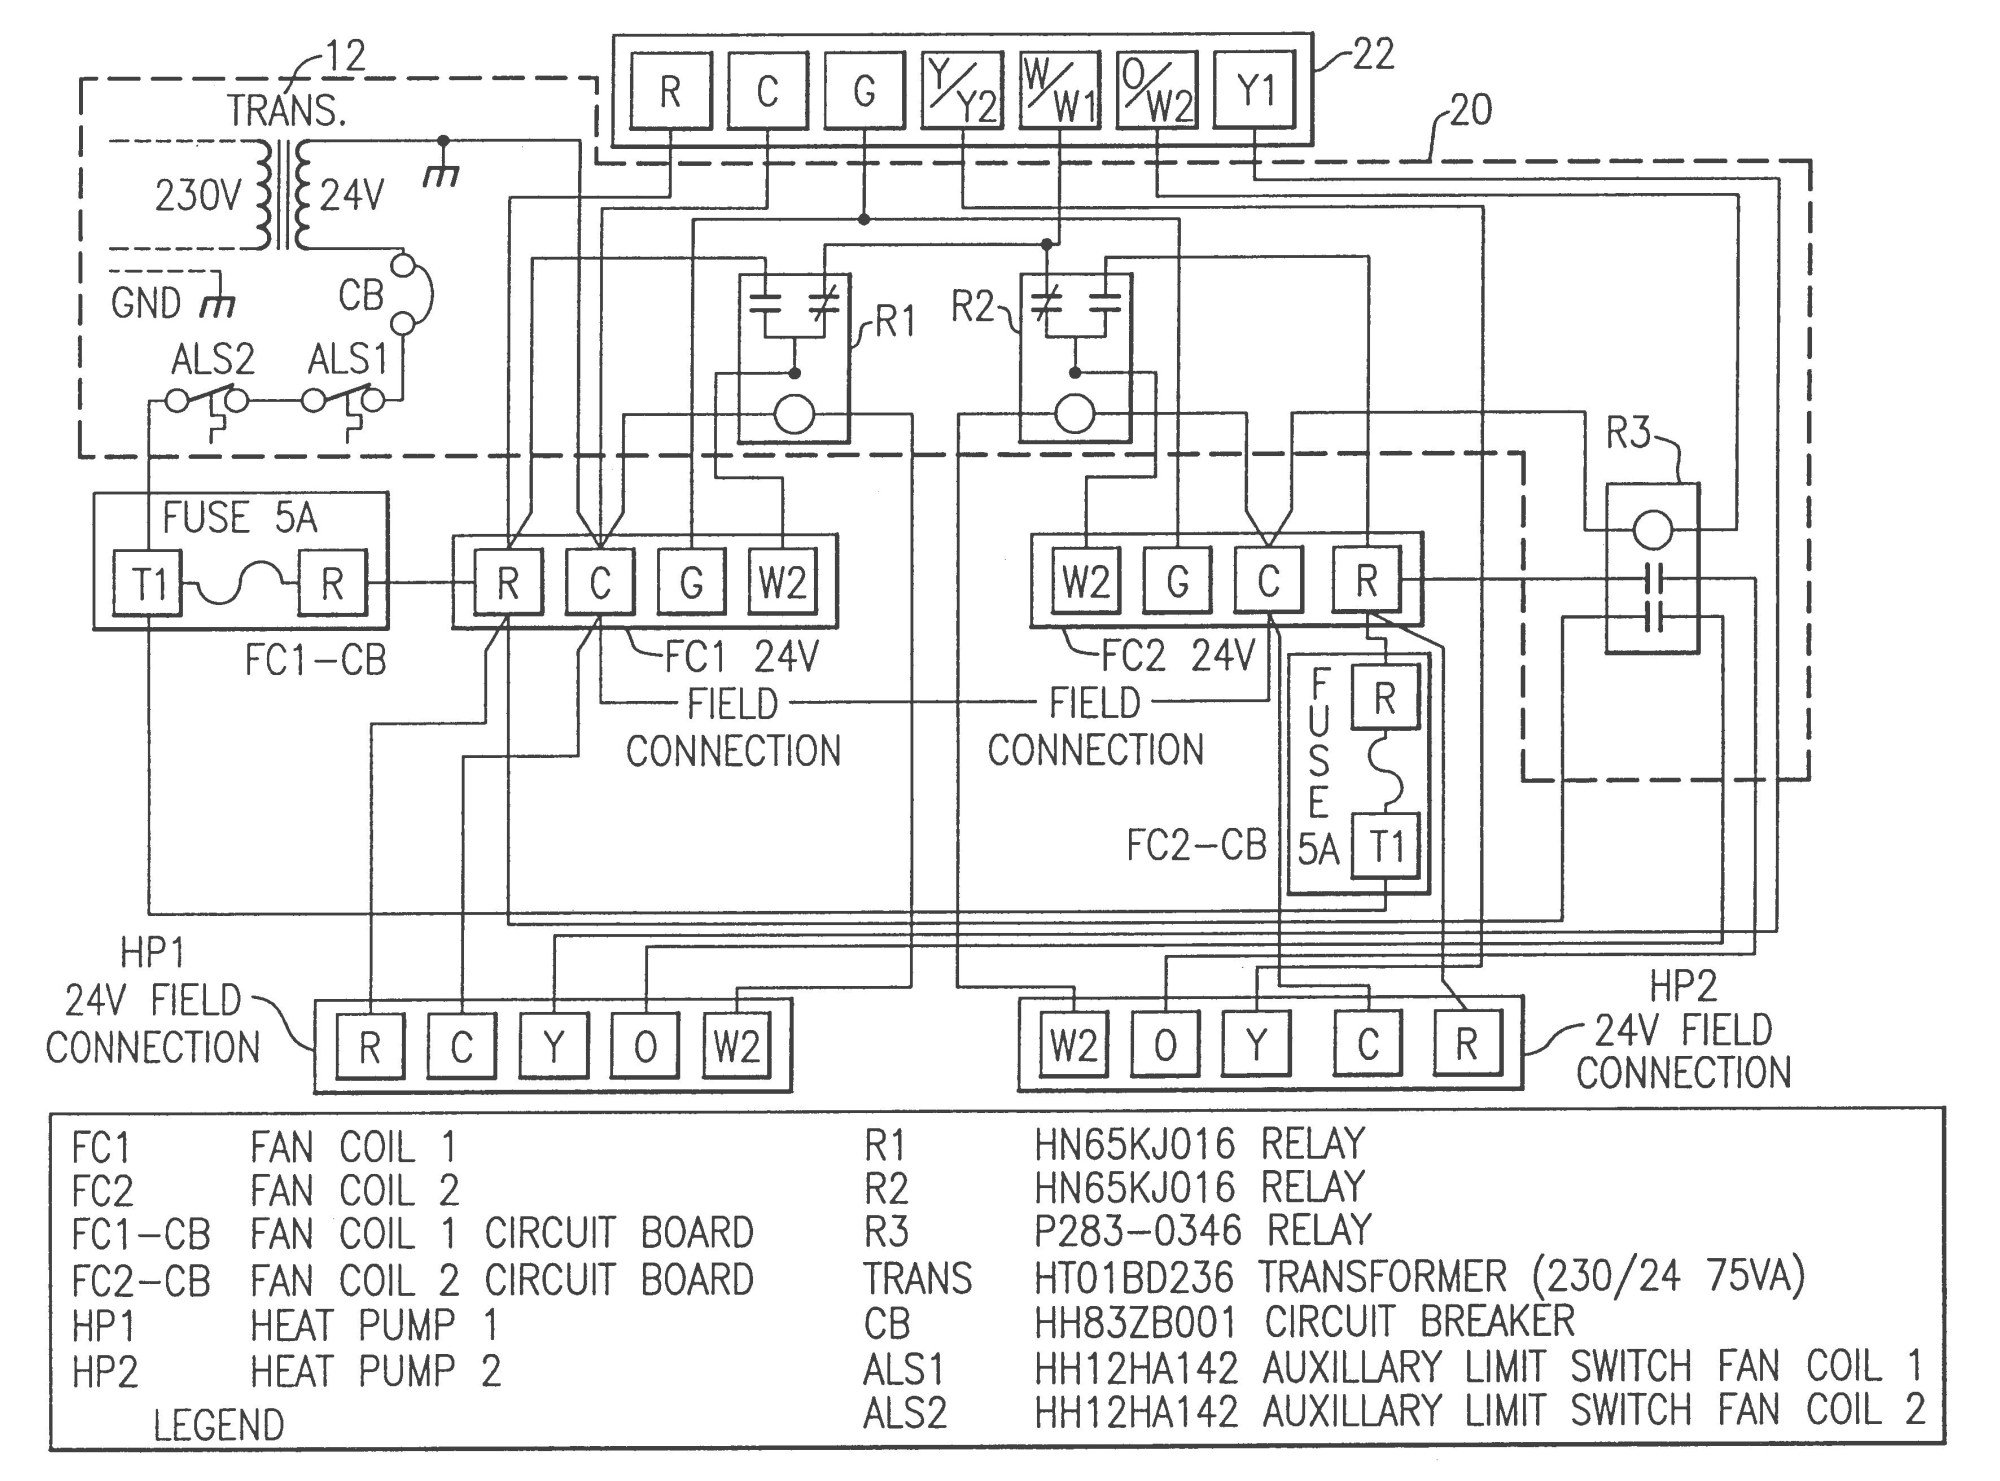 hight resolution of electric heat strip wiring diagram free wiring diagram strip heater wiring diagram electric heat strip wiring